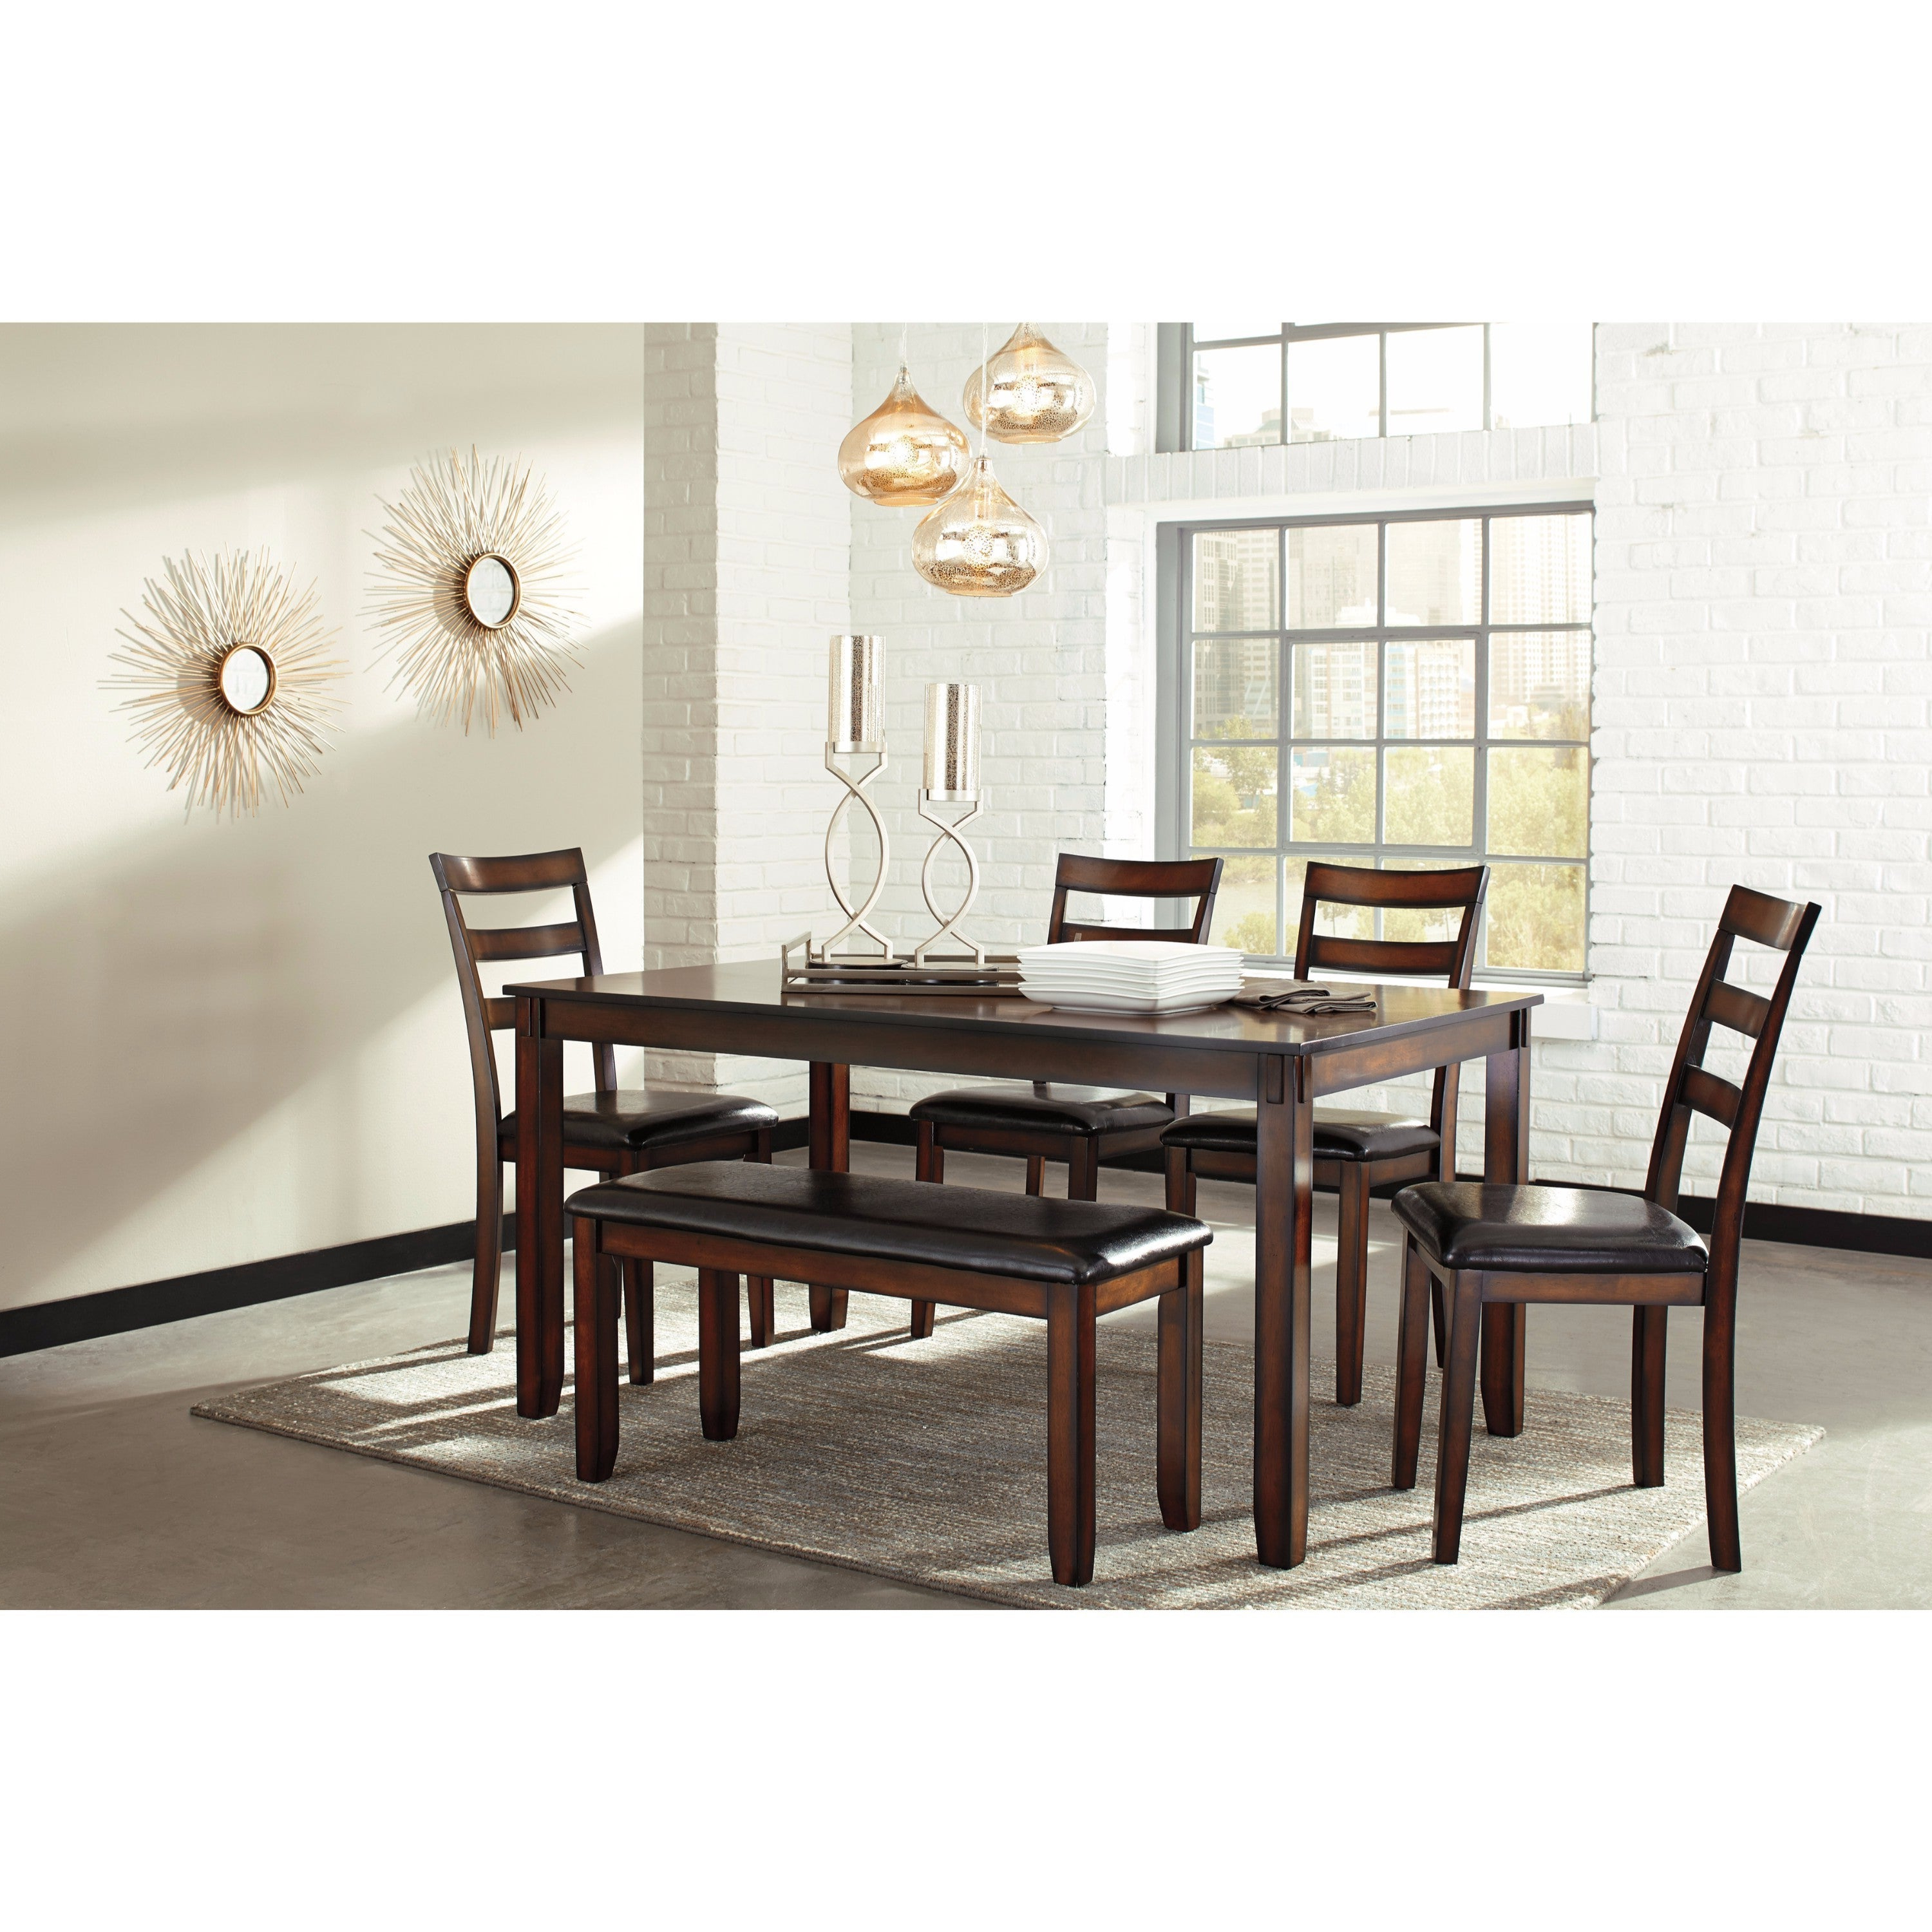 Latest Osterman 6 Piece Extendable Dining Sets (Set Of 6) Intended For Buy 6 Piece Sets Kitchen & Dining Room Sets Online At Overstock (View 3 of 20)